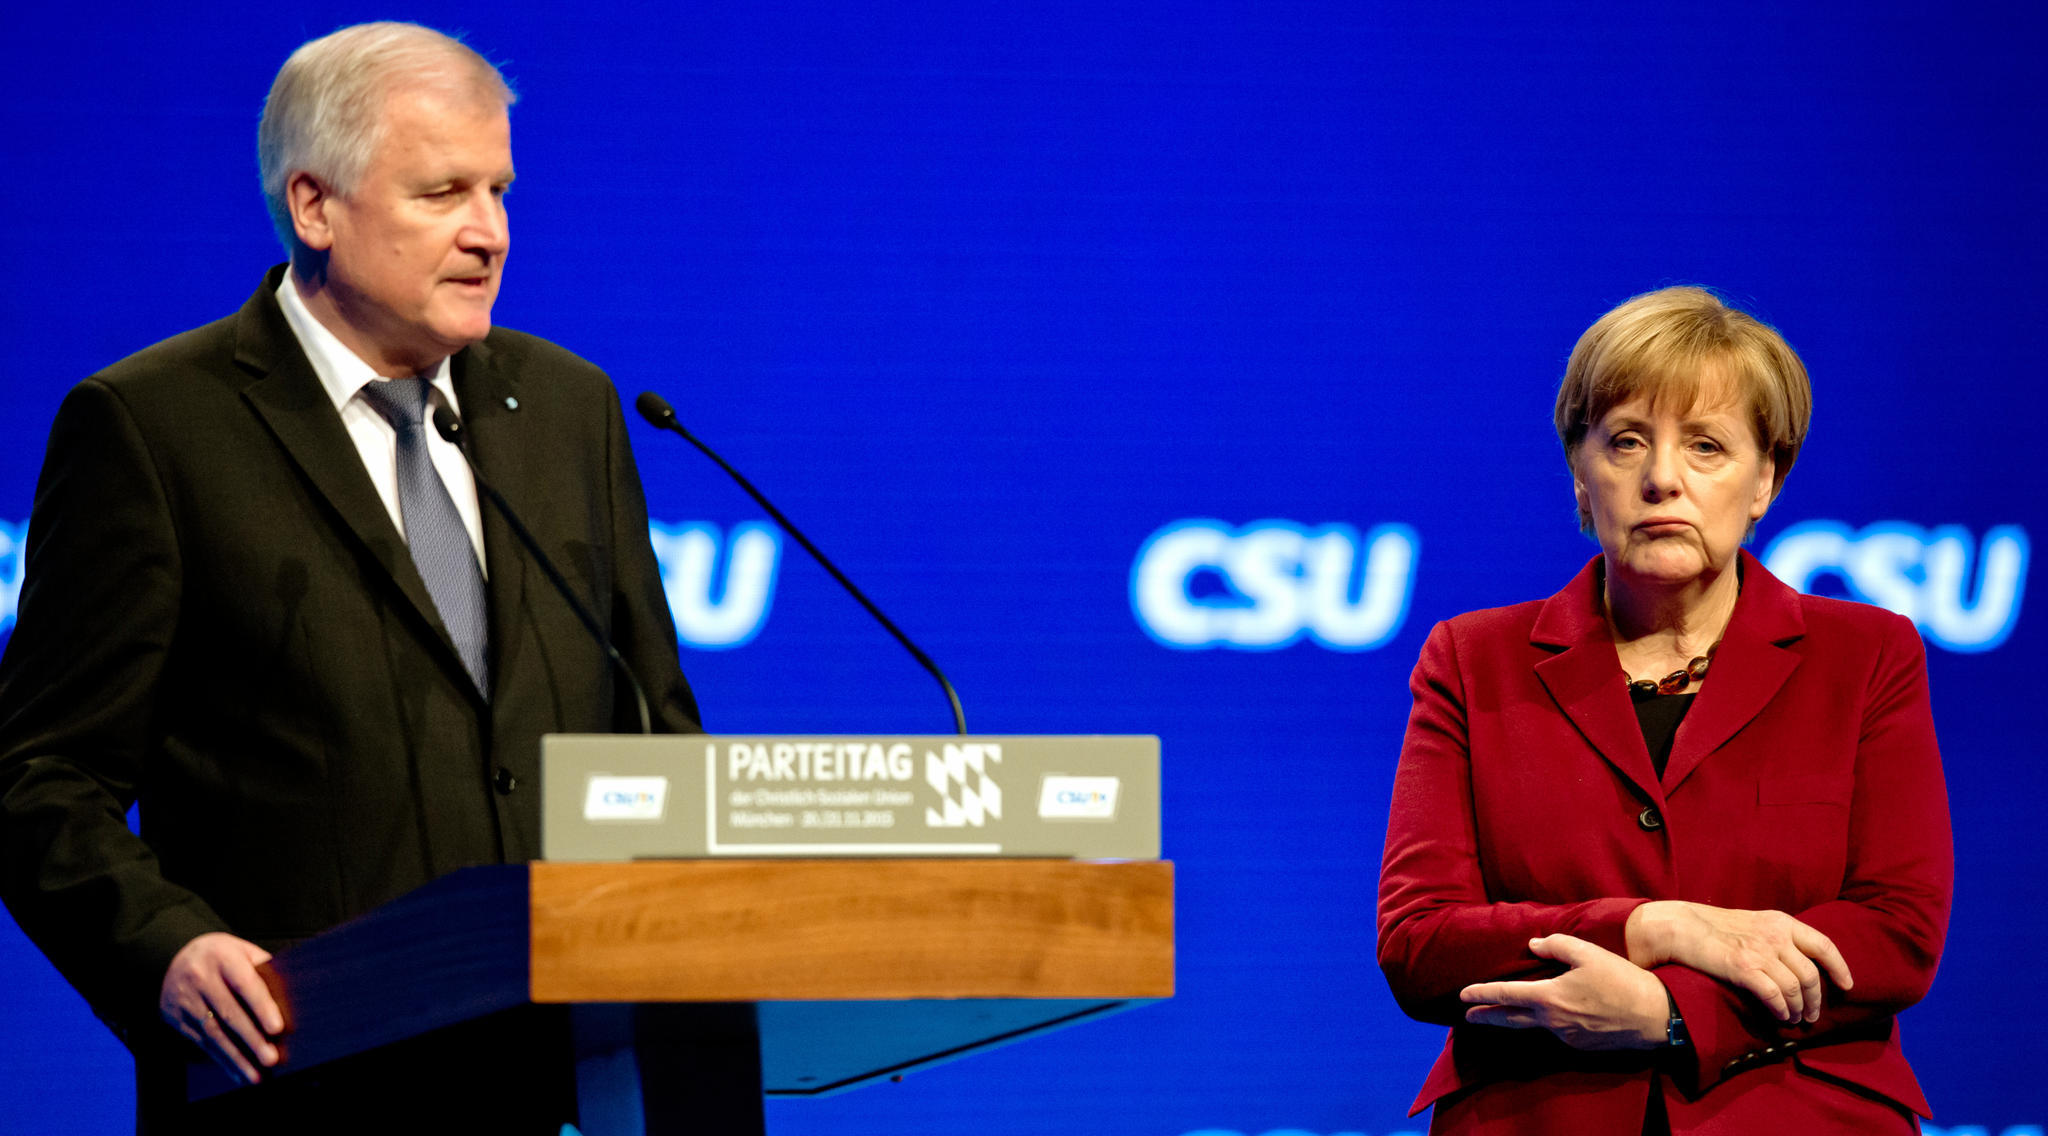 Merkel ve Seehofer